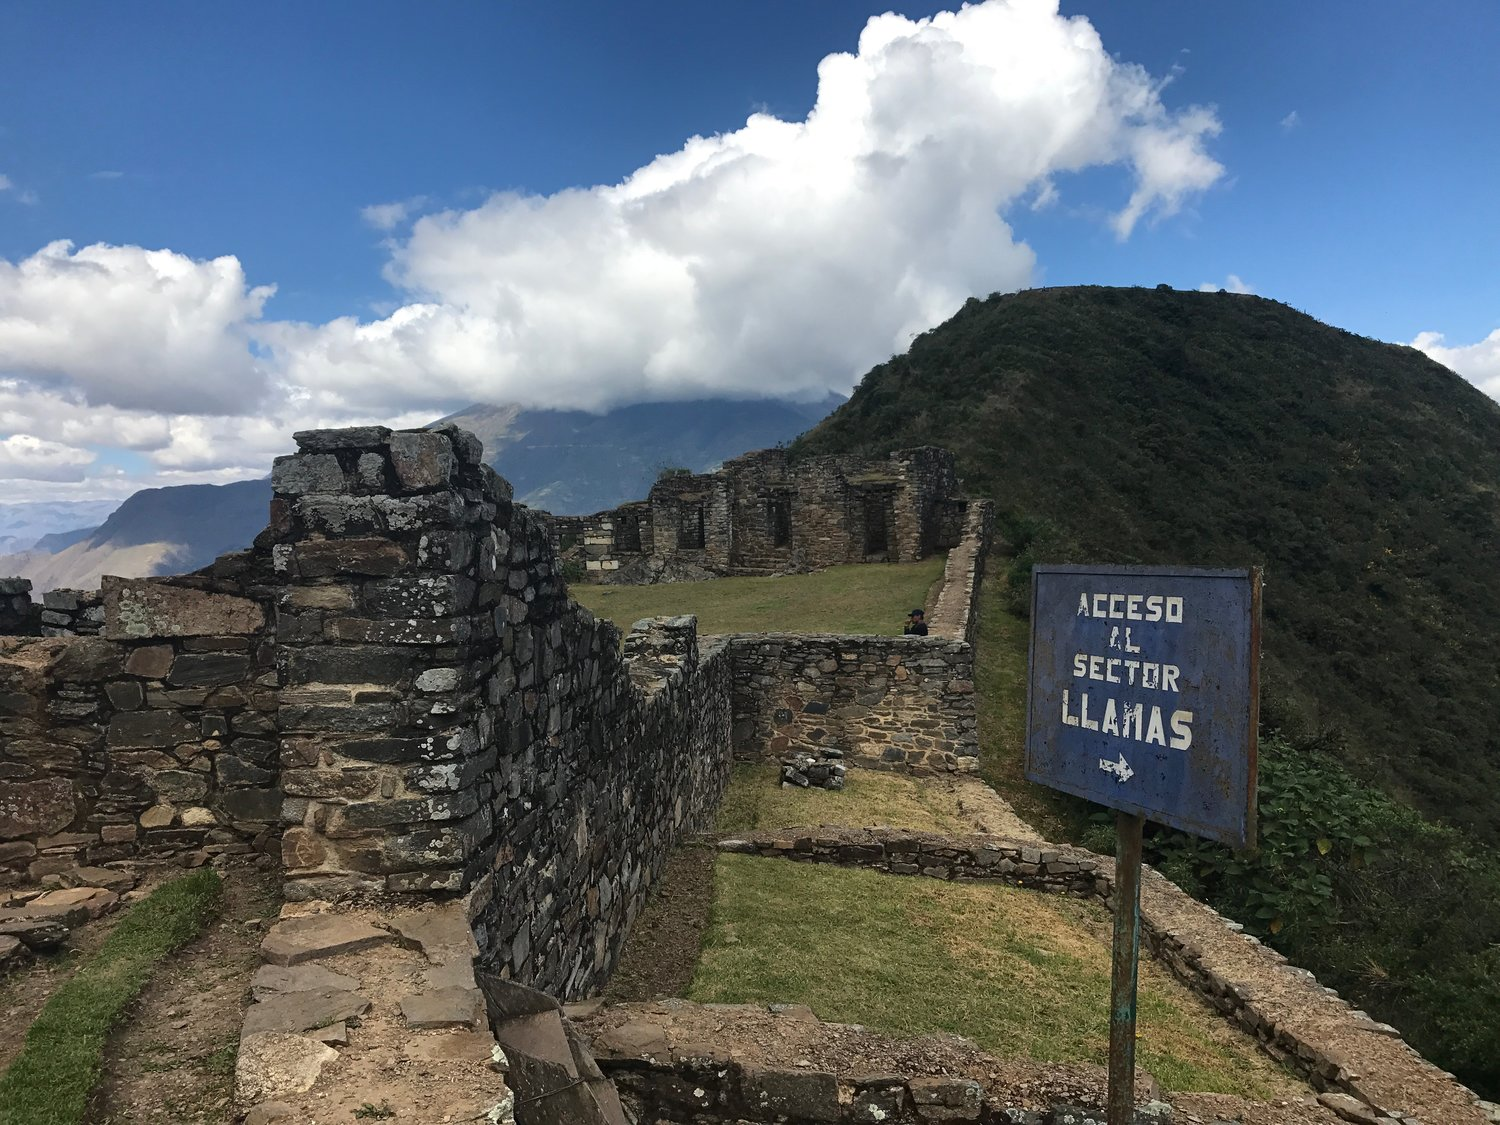 Peru Recap - Our first month back on the road